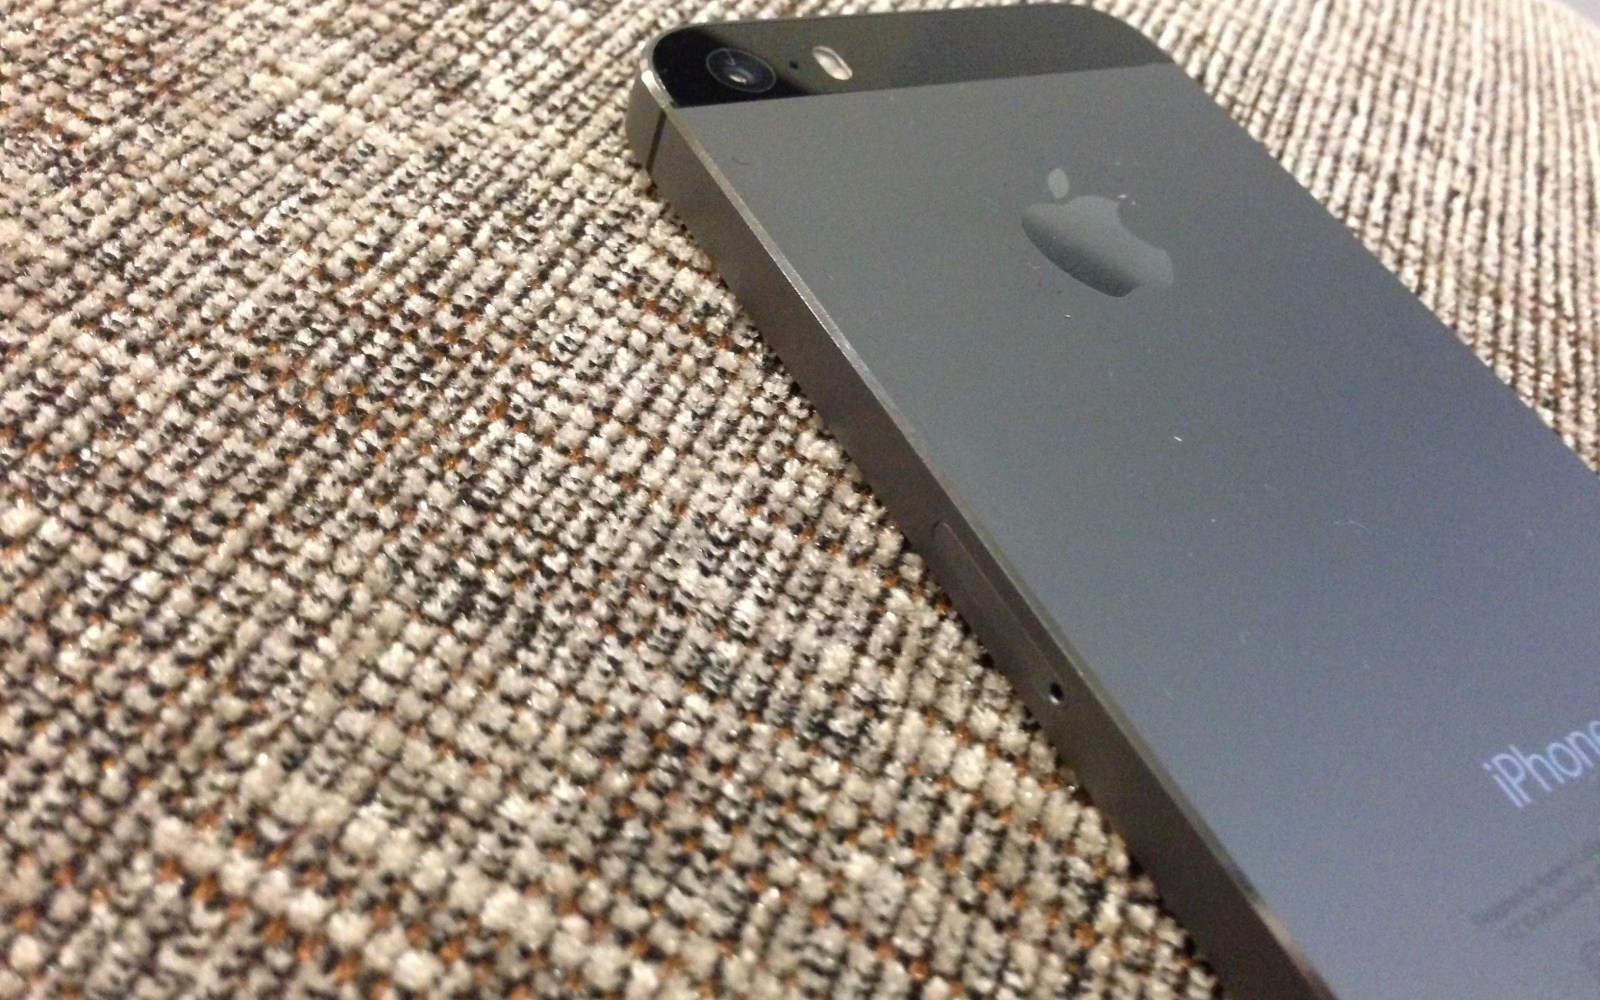 Review: 24 hours with the iPhone 5s…